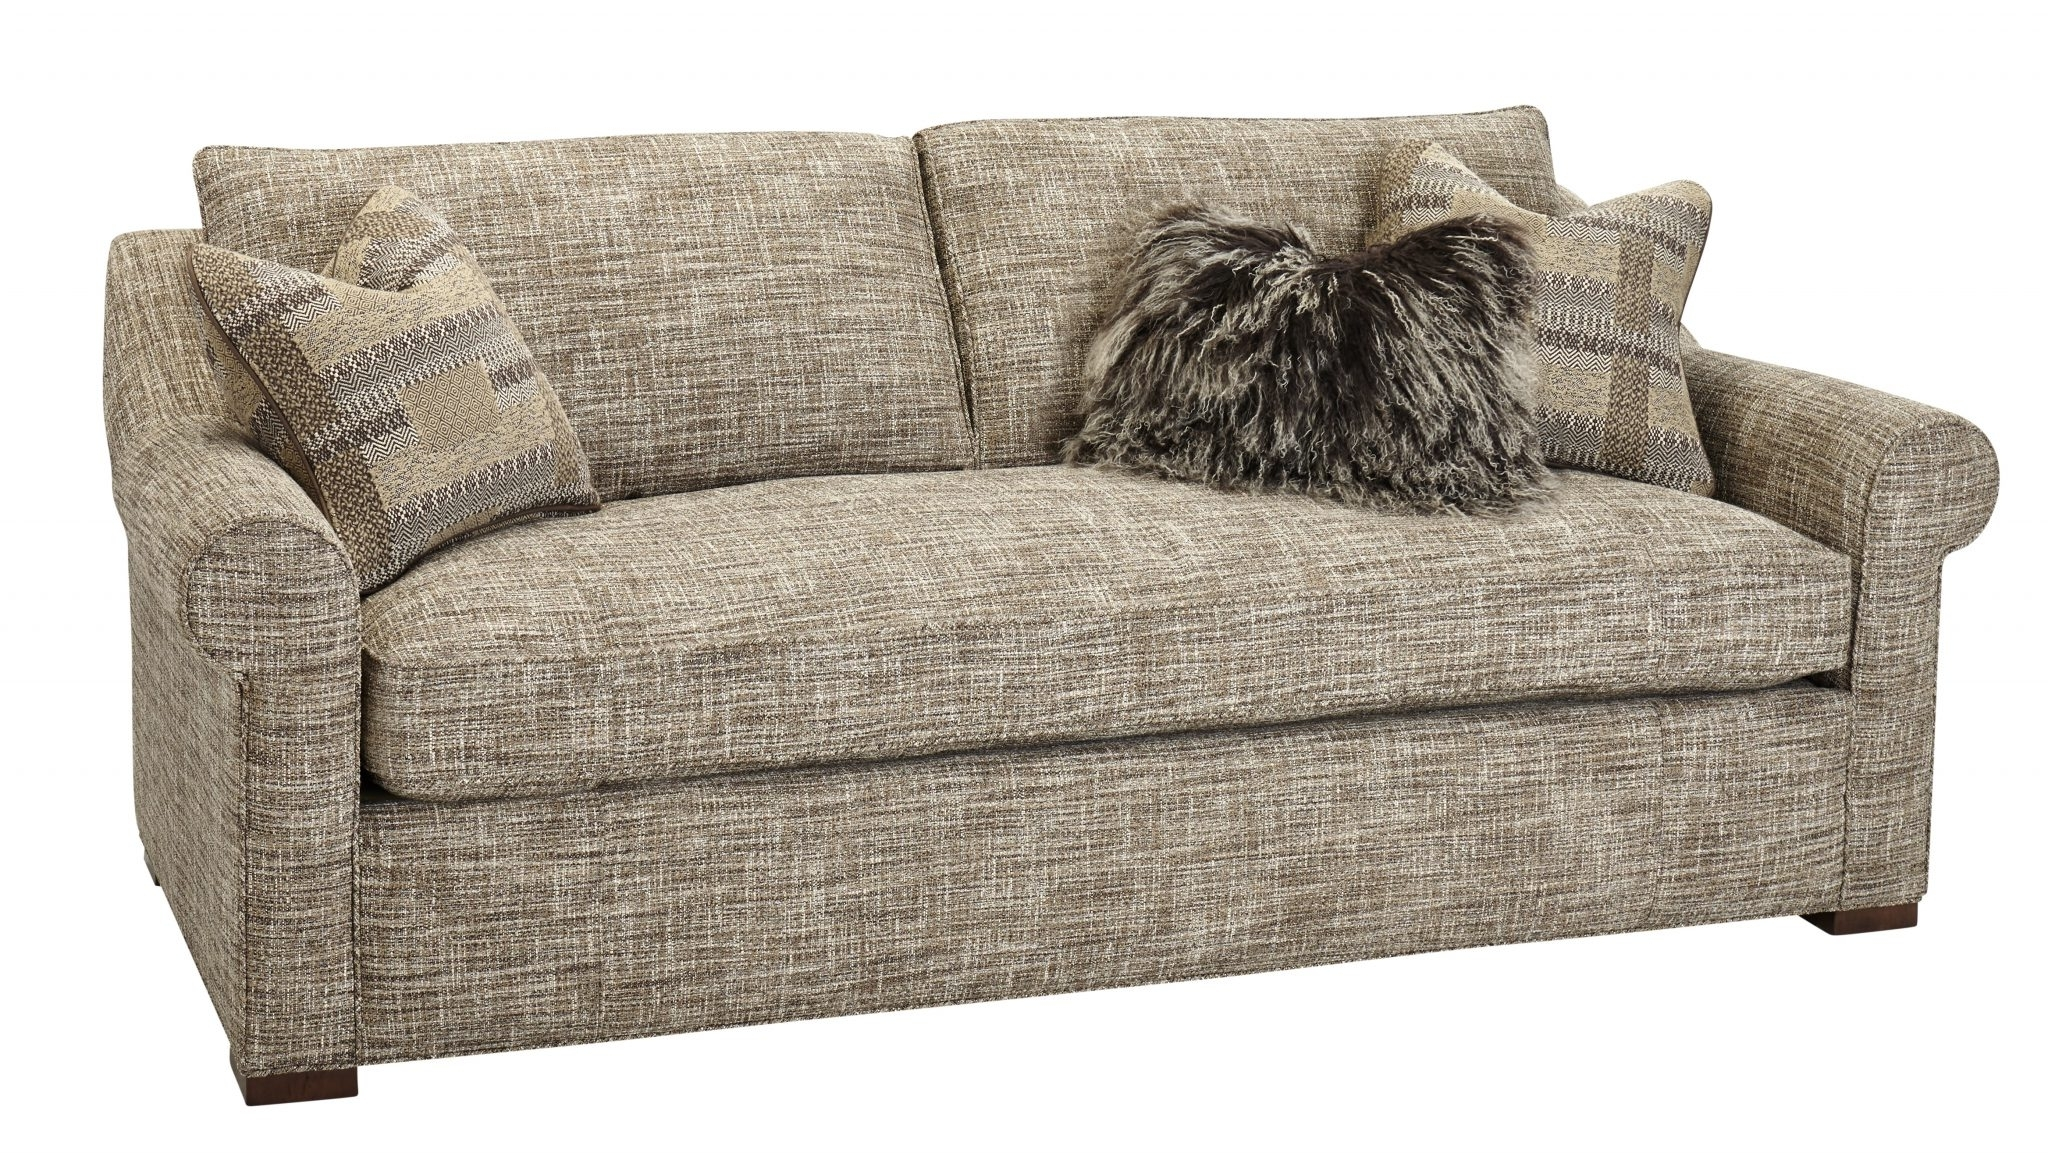 Trendy One Cushion Sofas – Massoud Furniture With Regard To One Cushion Sofas (View 5 of 20)